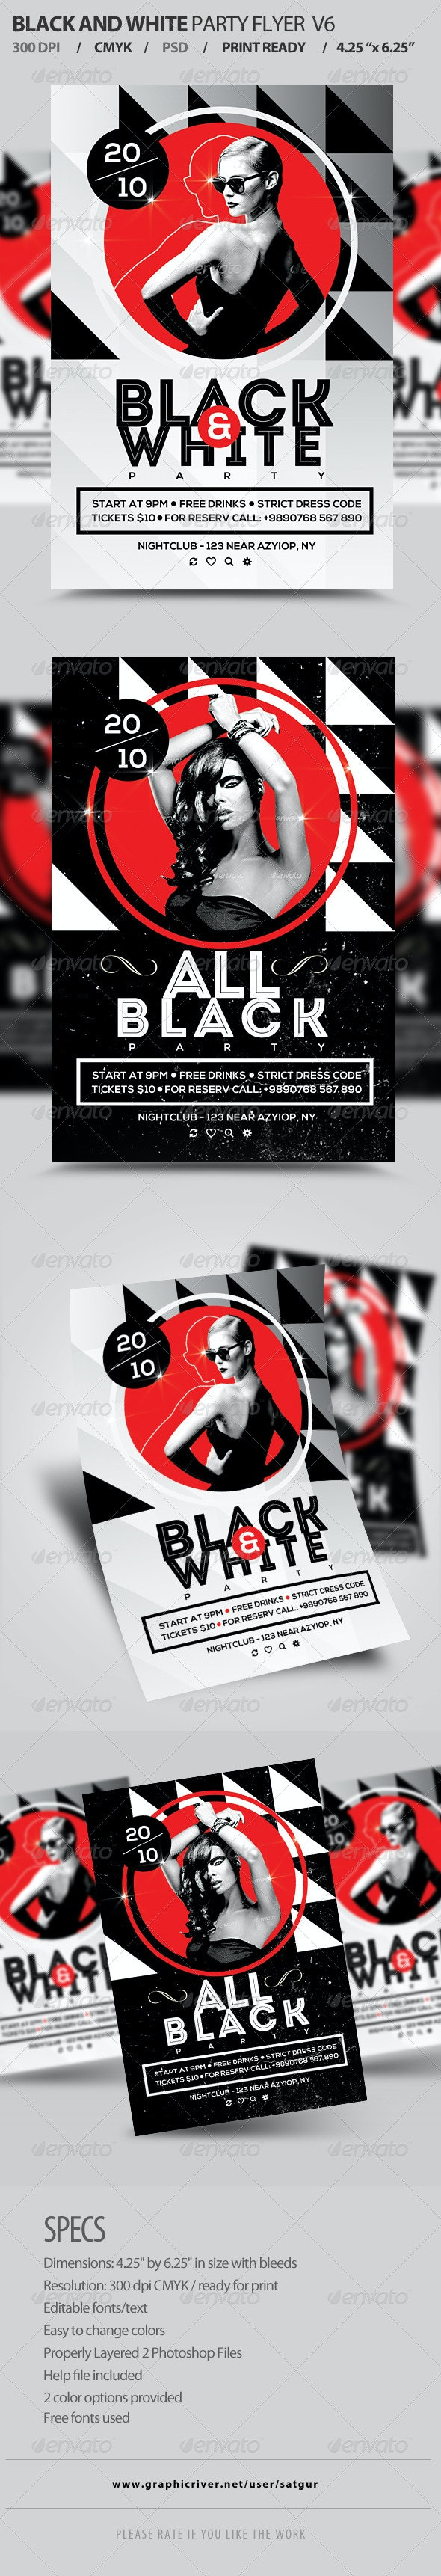 Black And White Party Flyer Template PSD V6 - Clubs & Parties Events